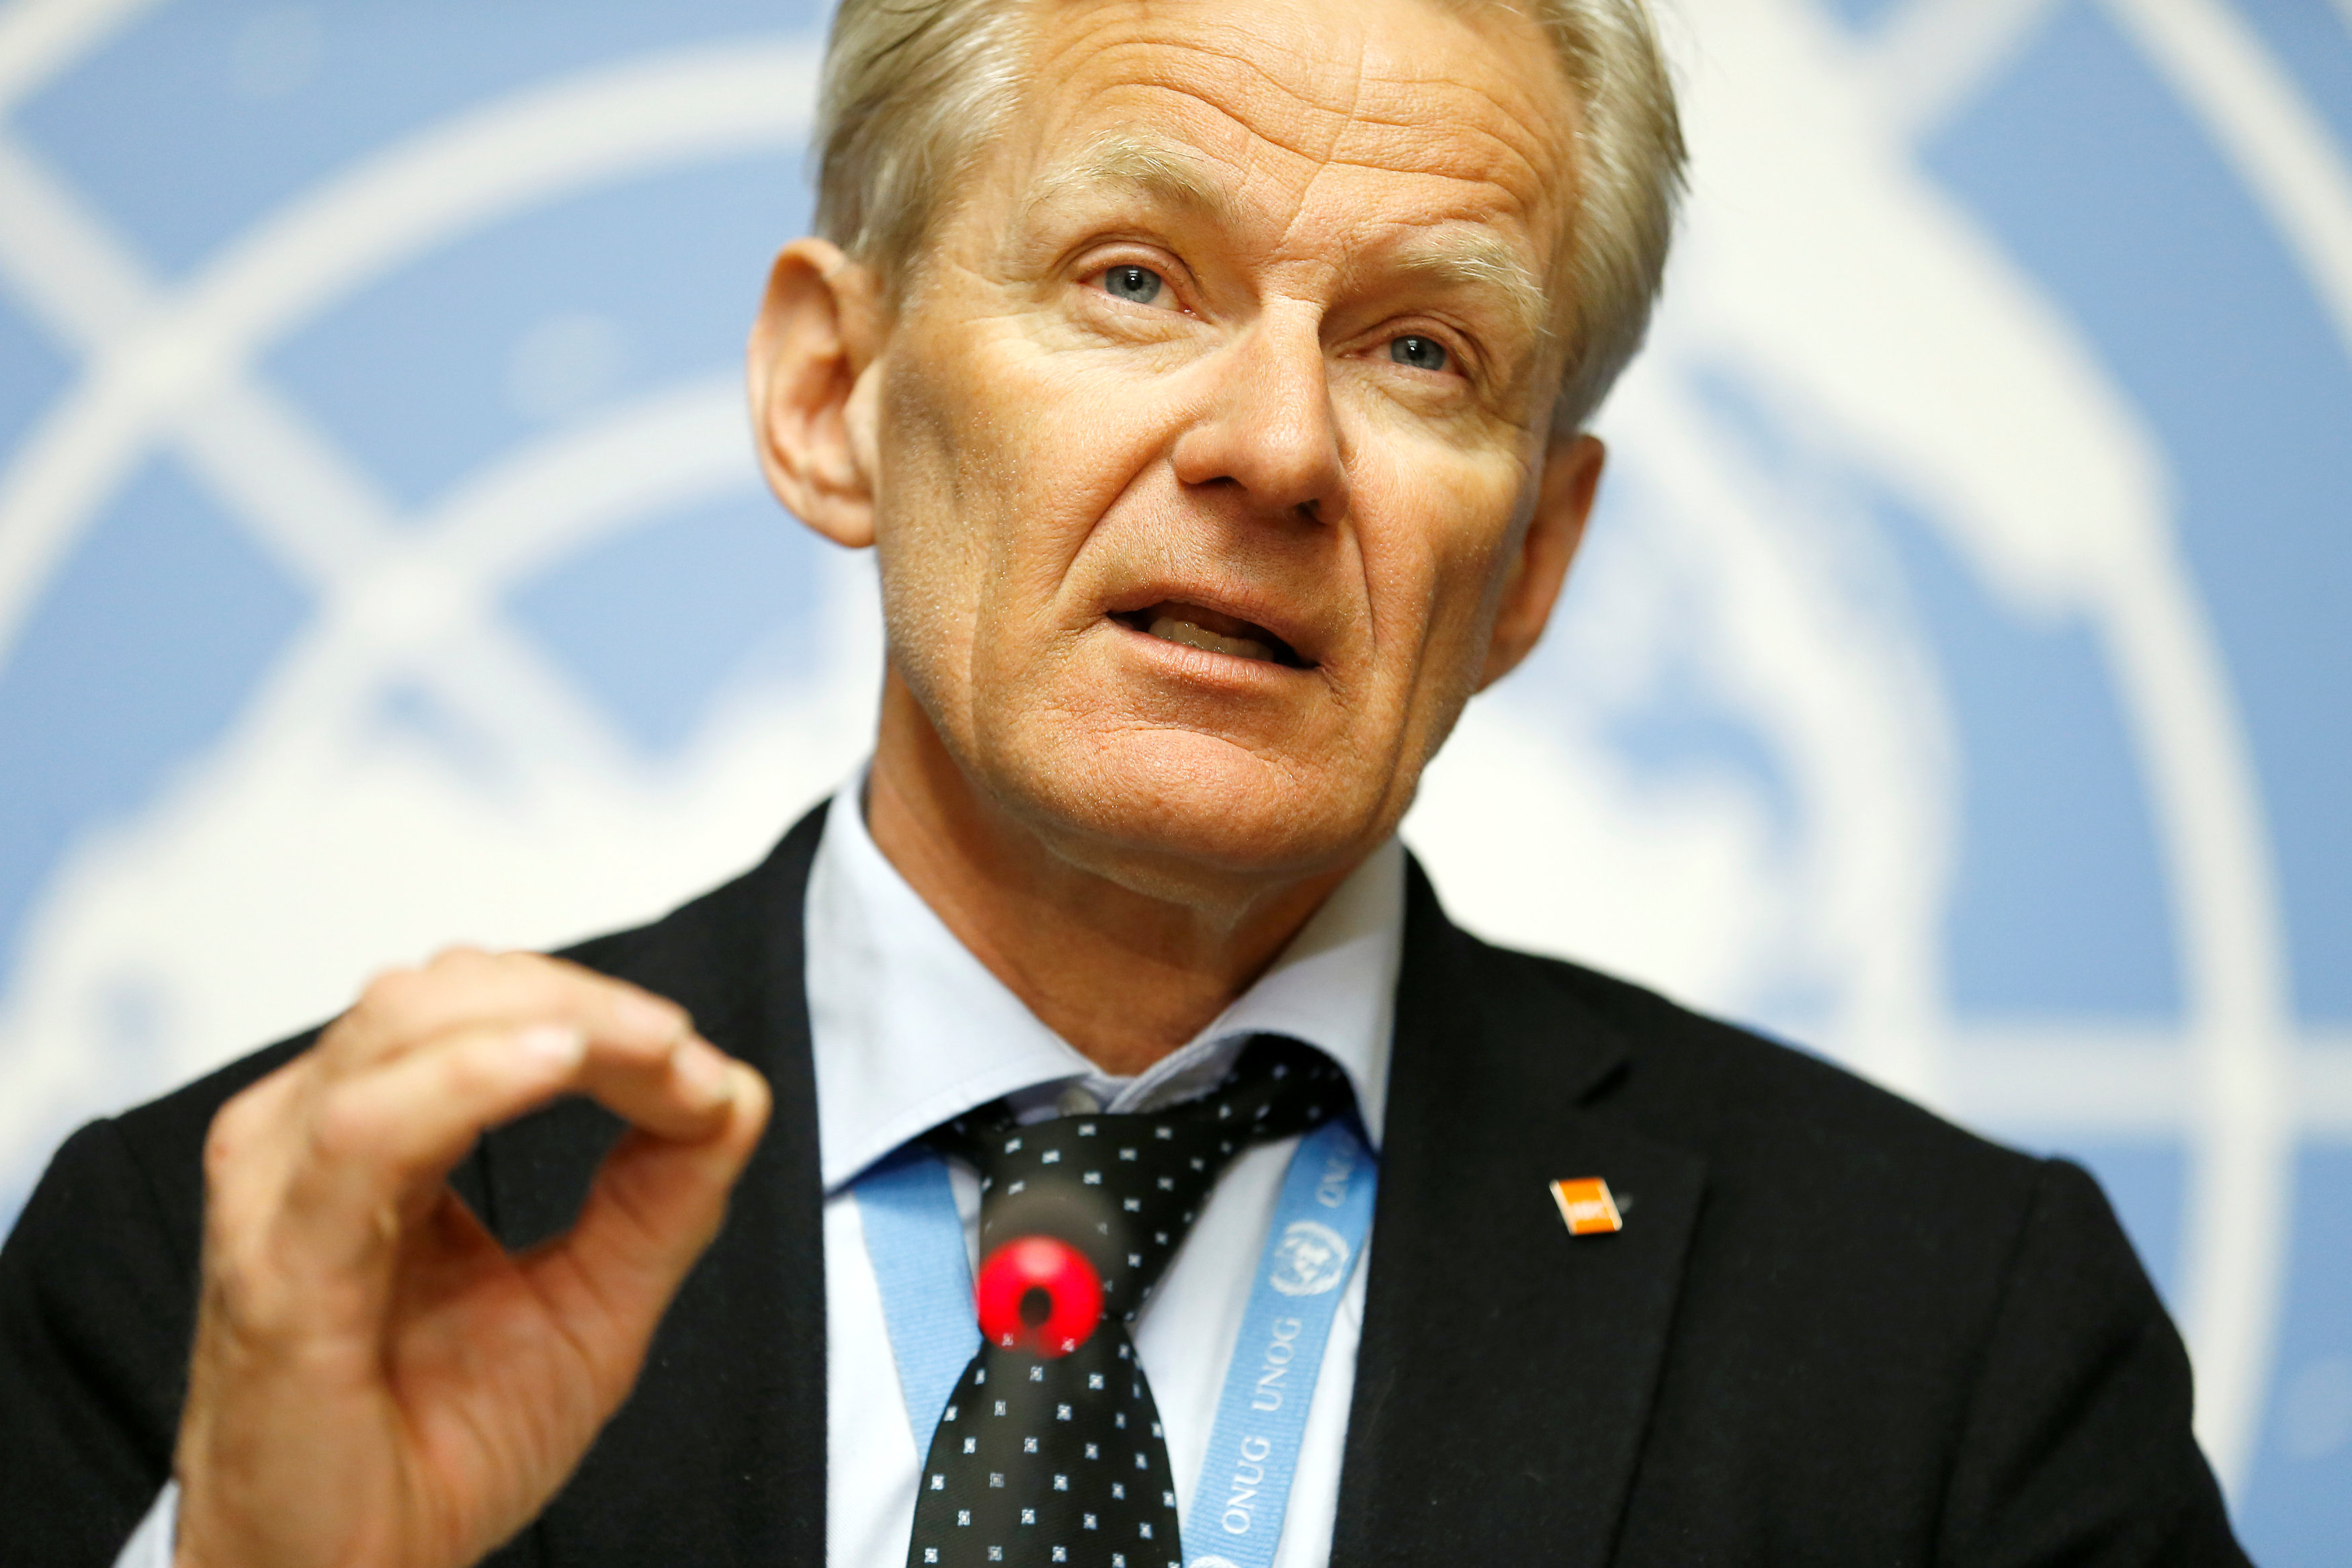 Special Advisor to the United Nations Special Envoy for Syria, Jan Egeland, adresses the media during a news conference in Geneva, Switzerland, April 4, 2018. REUTERS/Pierre Albouy